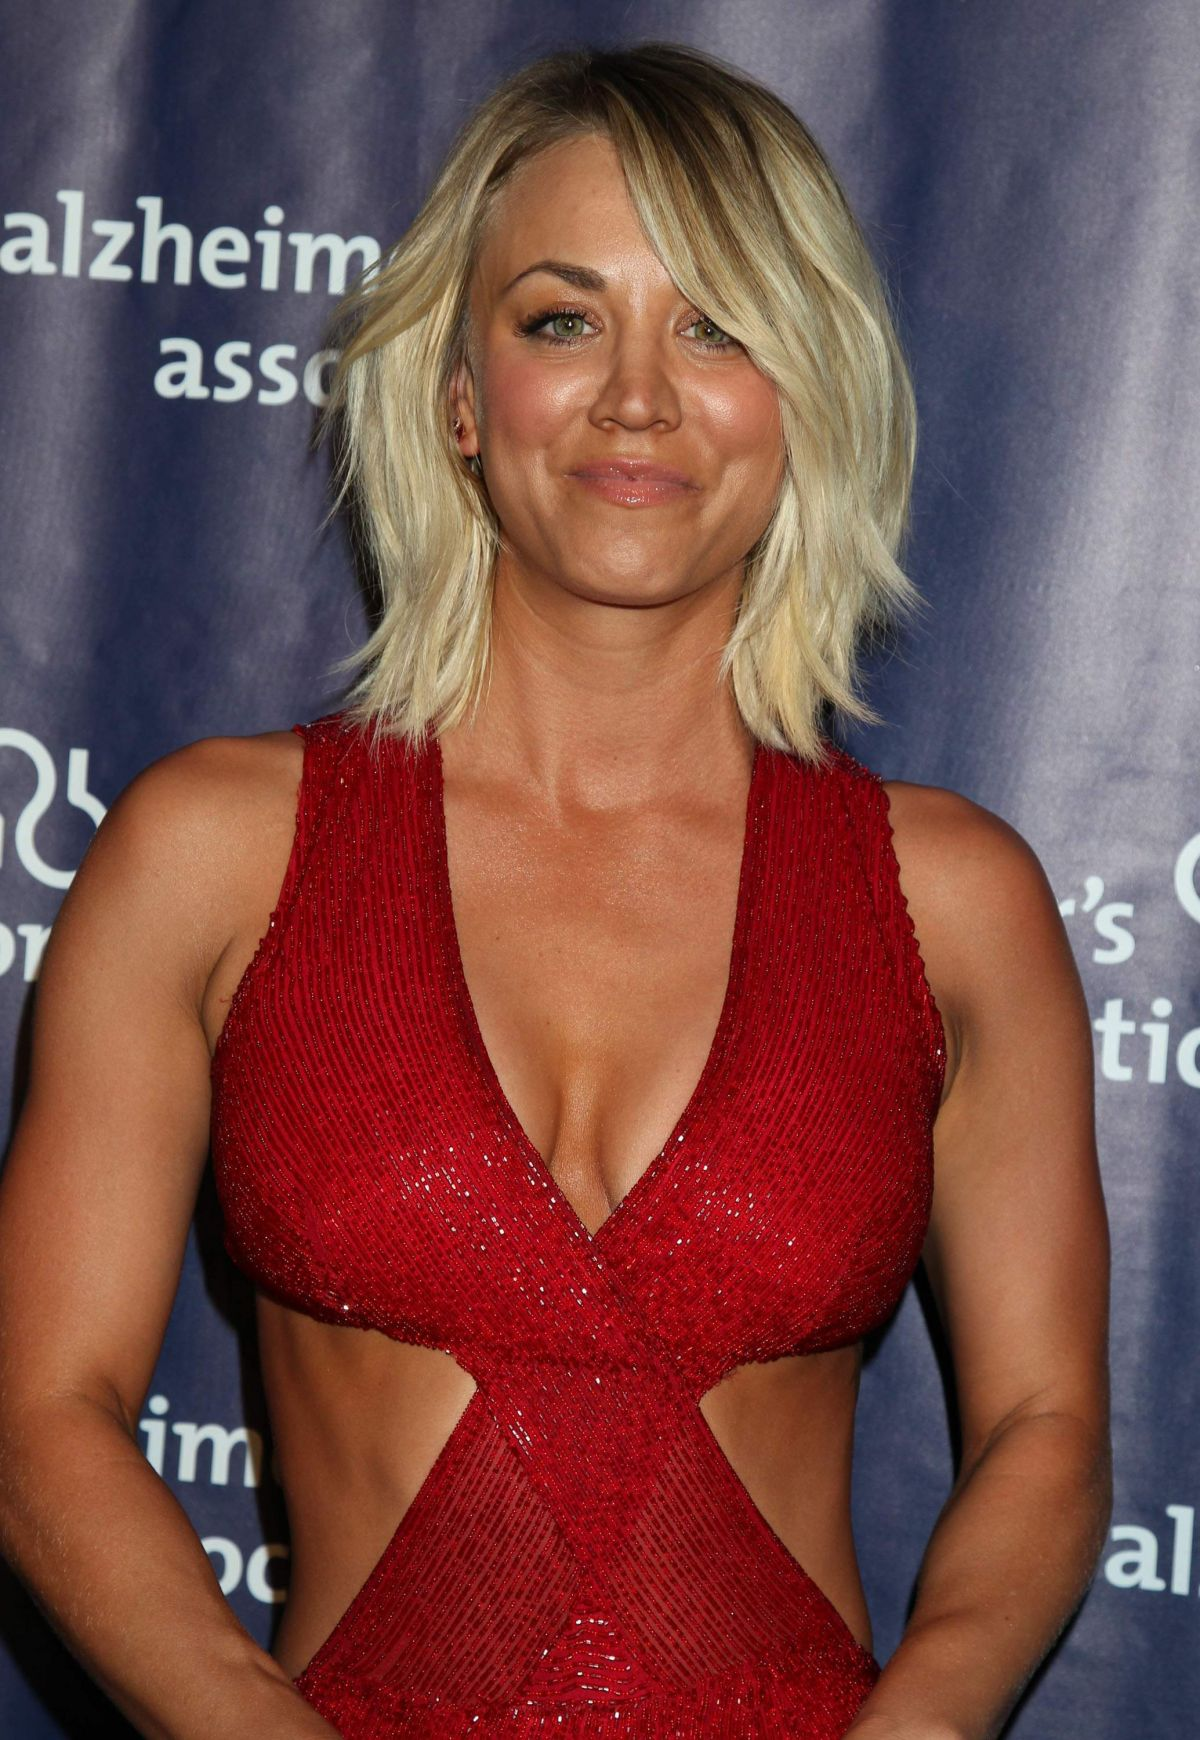 Kaley Cuoco Archives - Page 9 of 31 - HawtCelebs - HawtCelebs